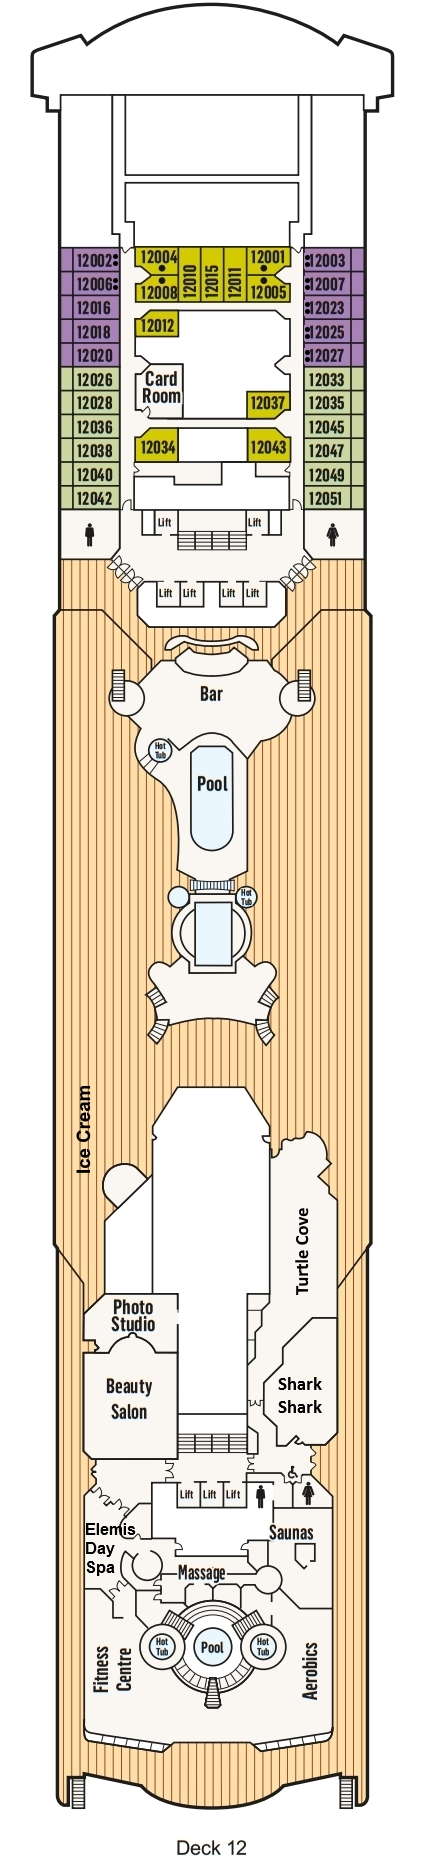 P&O- Pacific Explorer Deck 12 layout